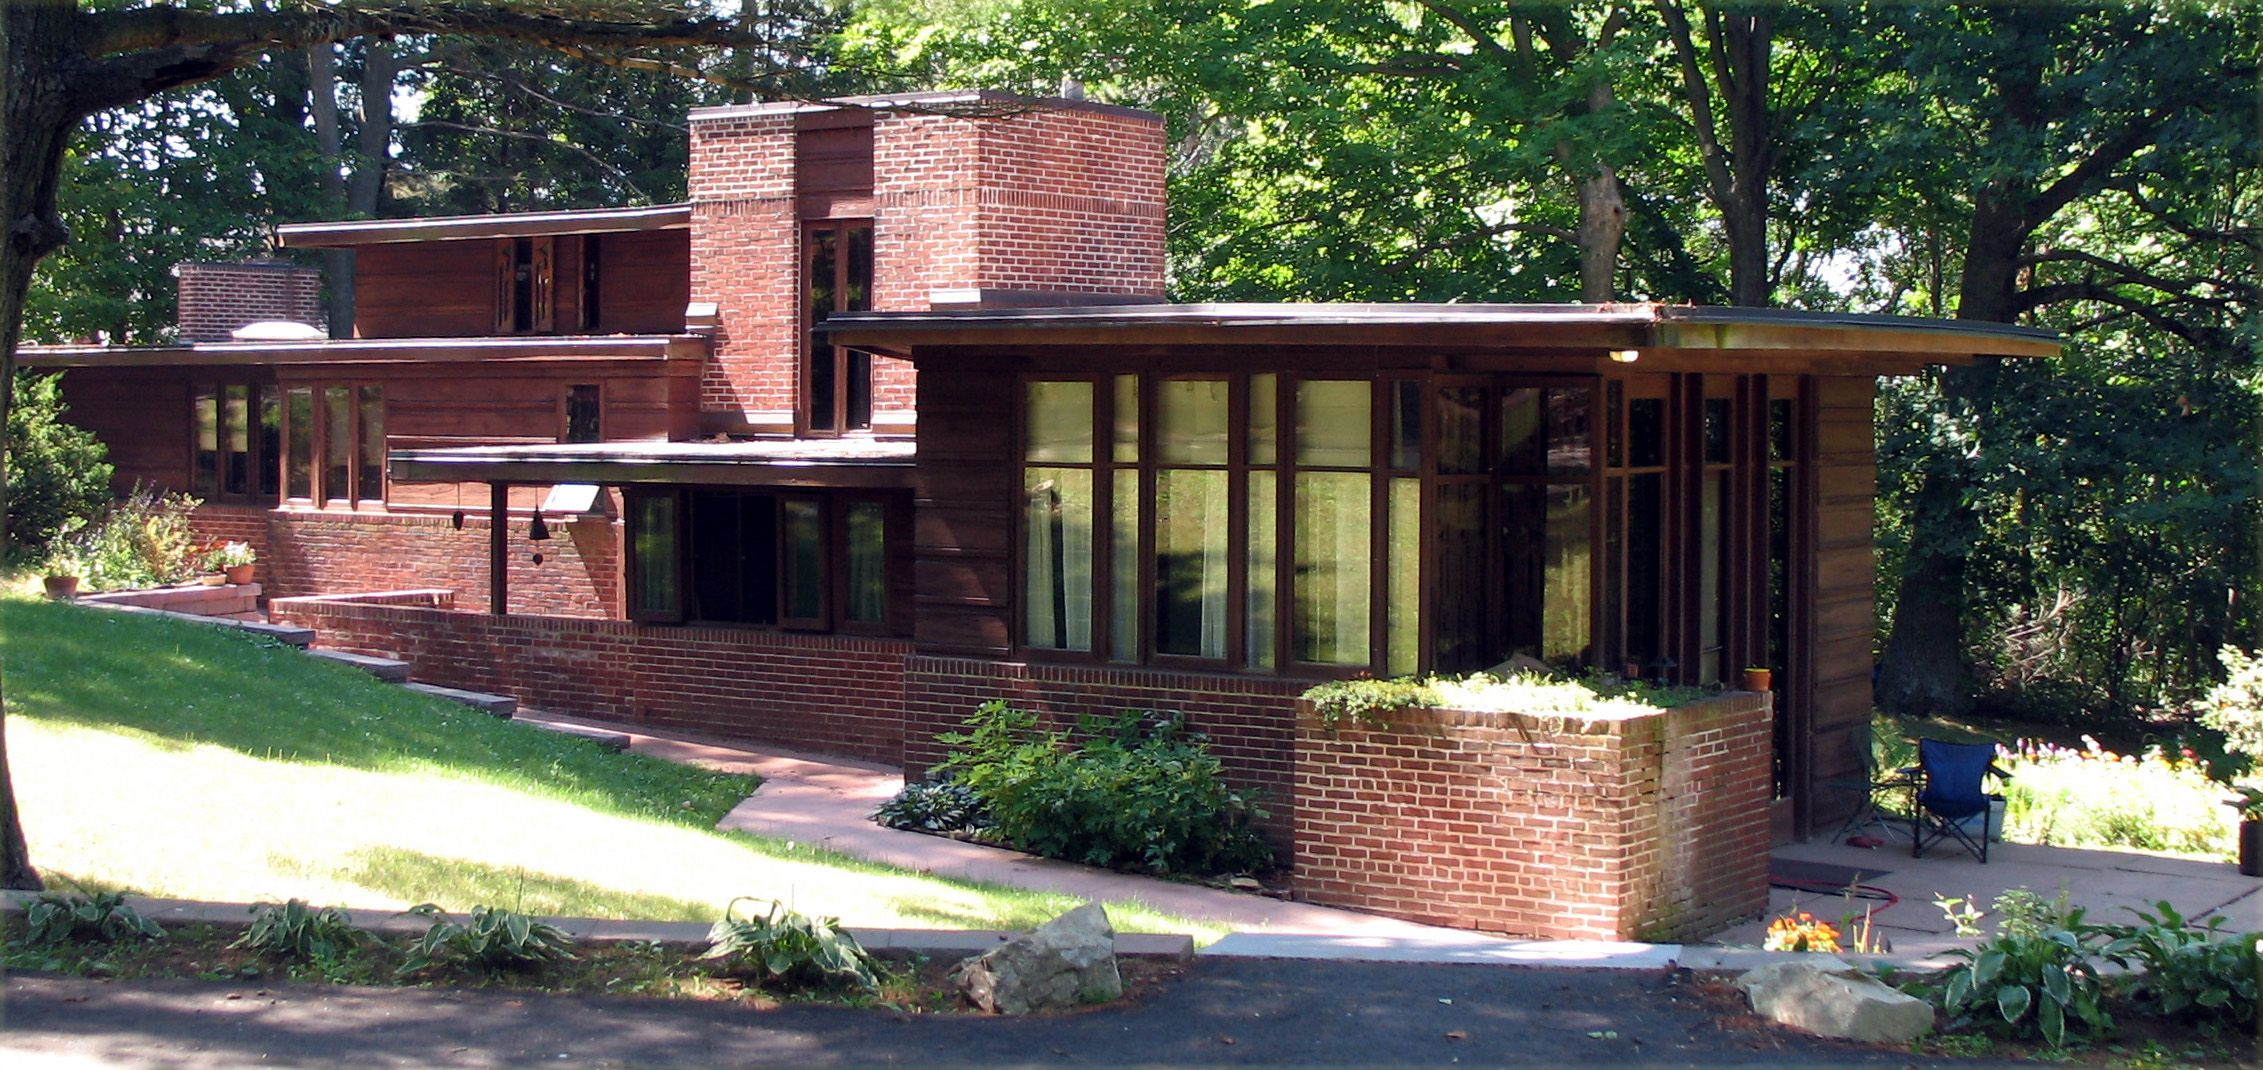 Frank Lloyd Wright Style House Charles Lmanson House  Wikipedia The Free Encyclopedia  Frank